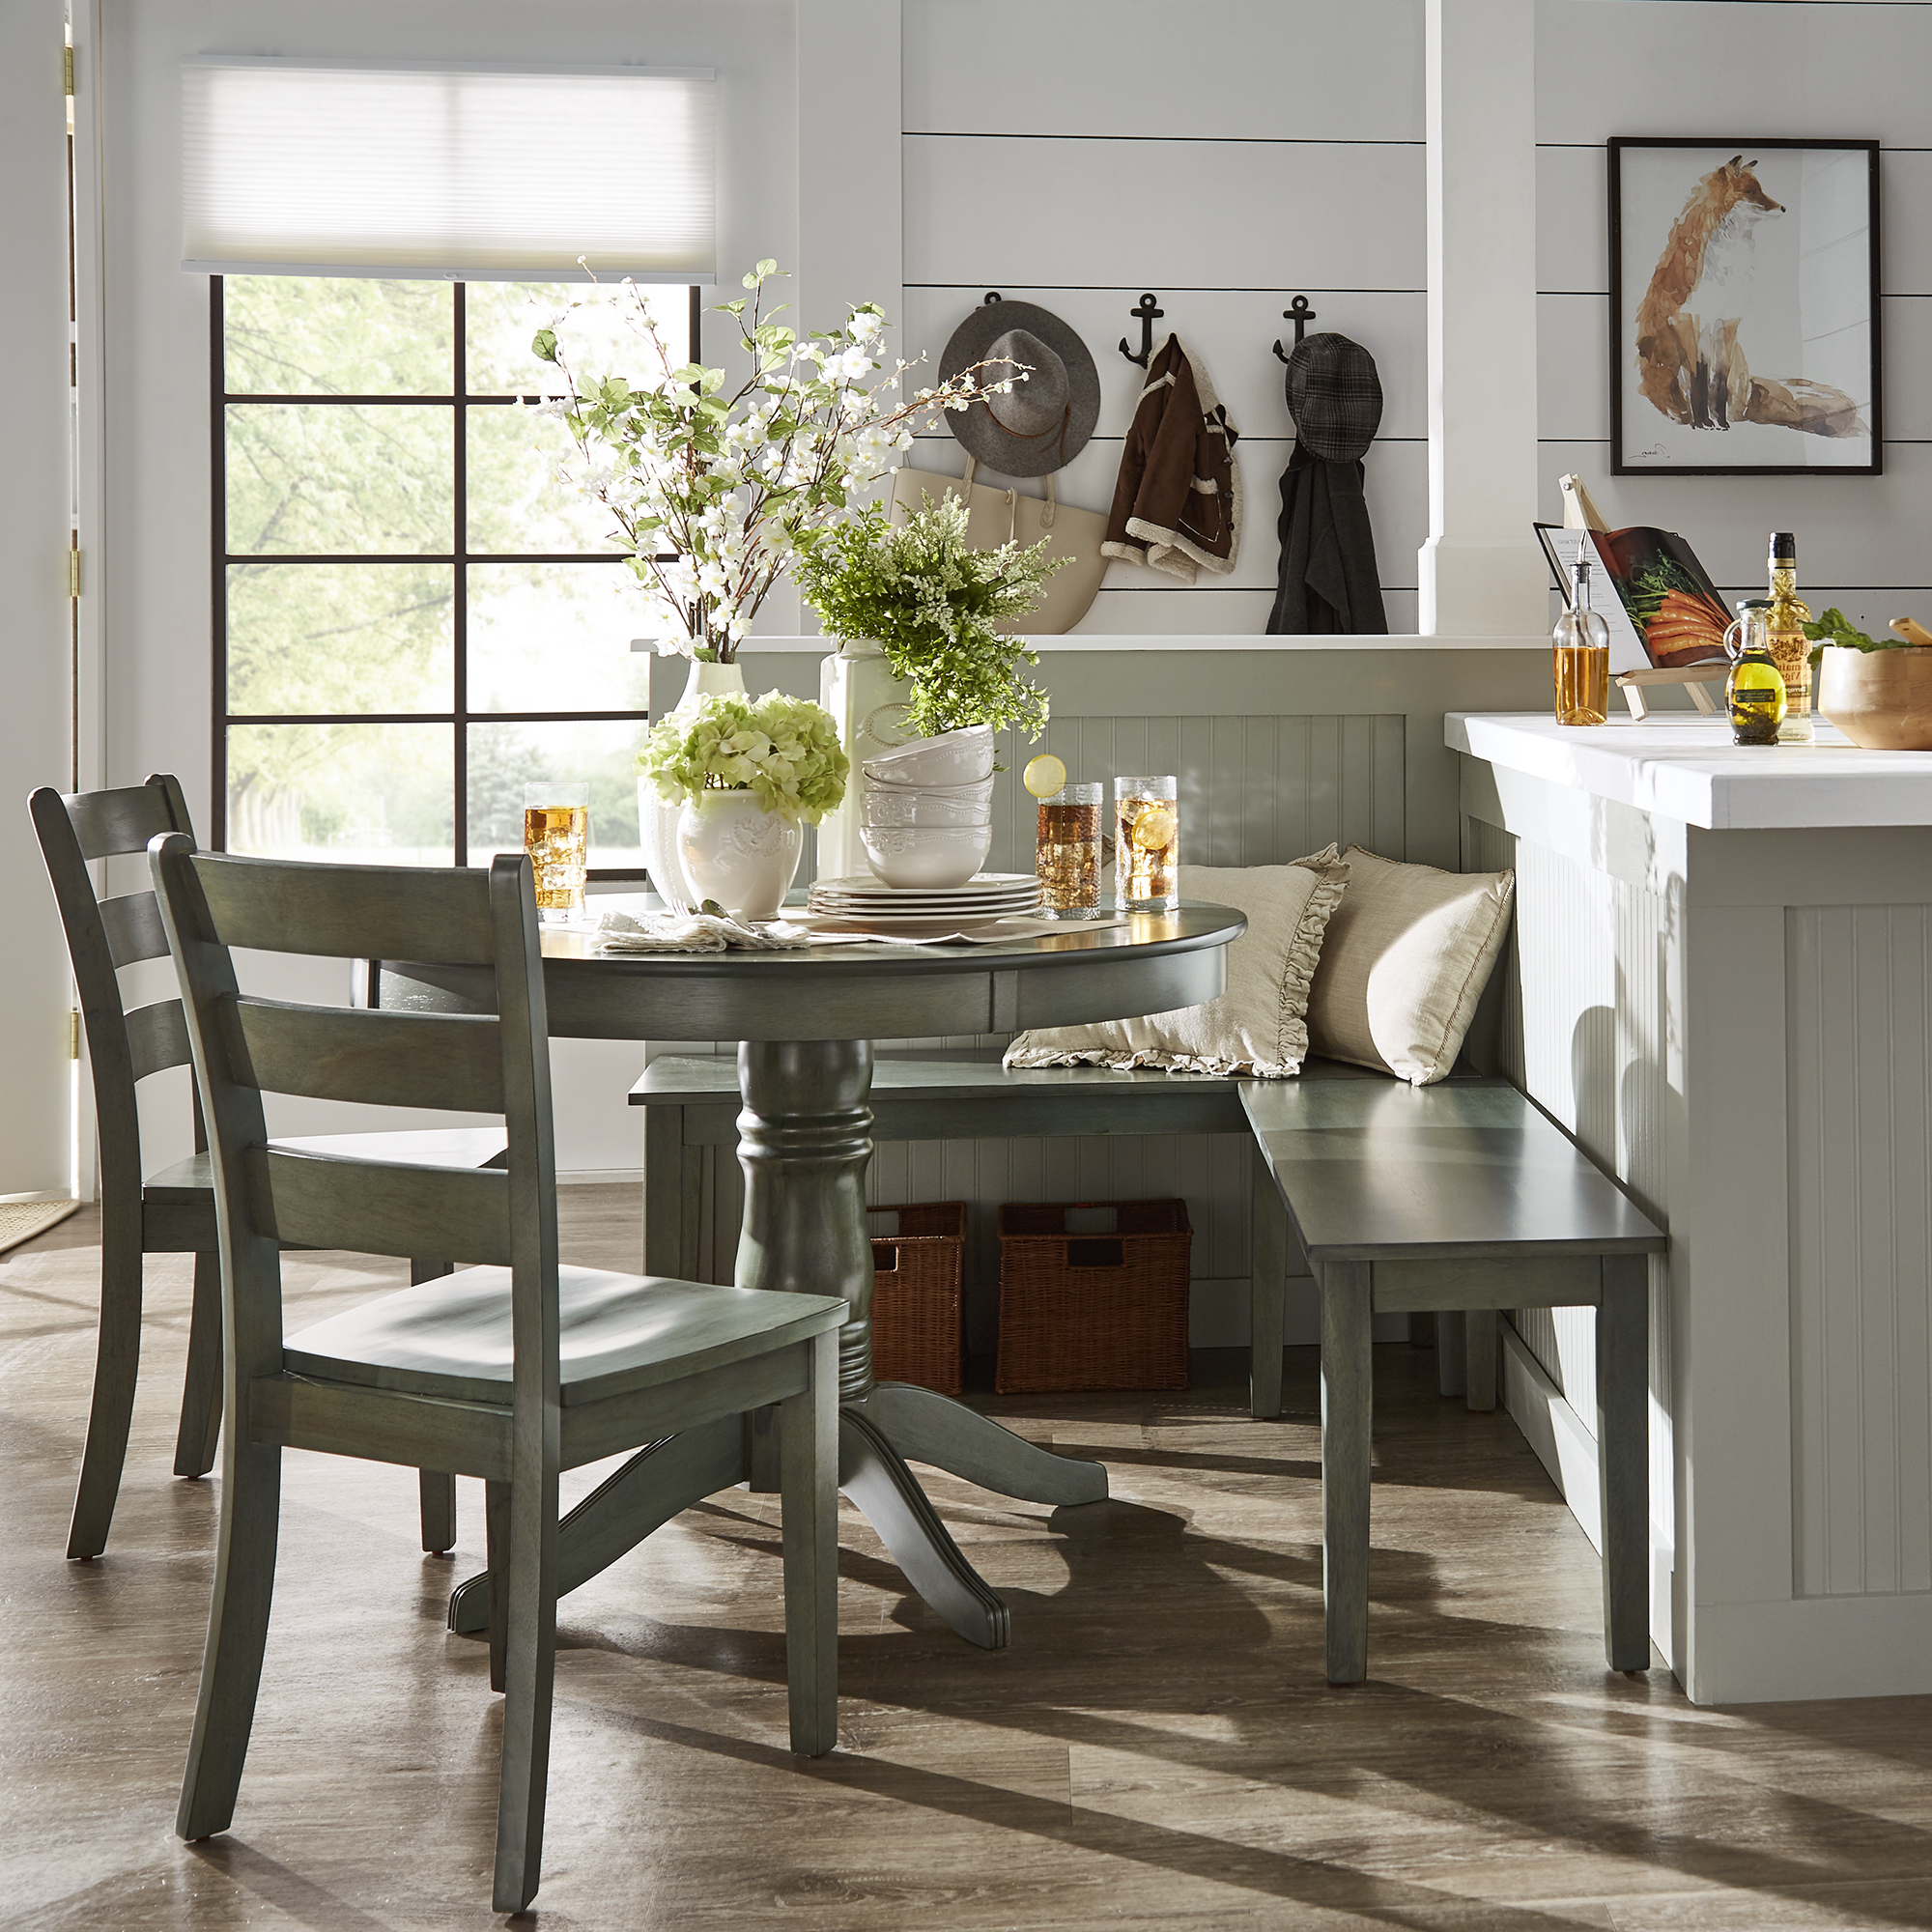 Weston Home Lexington 5 Piece Breakfast Nook Dining Set, Round Table With Regard To Well Known 5 Piece Breakfast Nook Dining Sets (View 18 of 25)